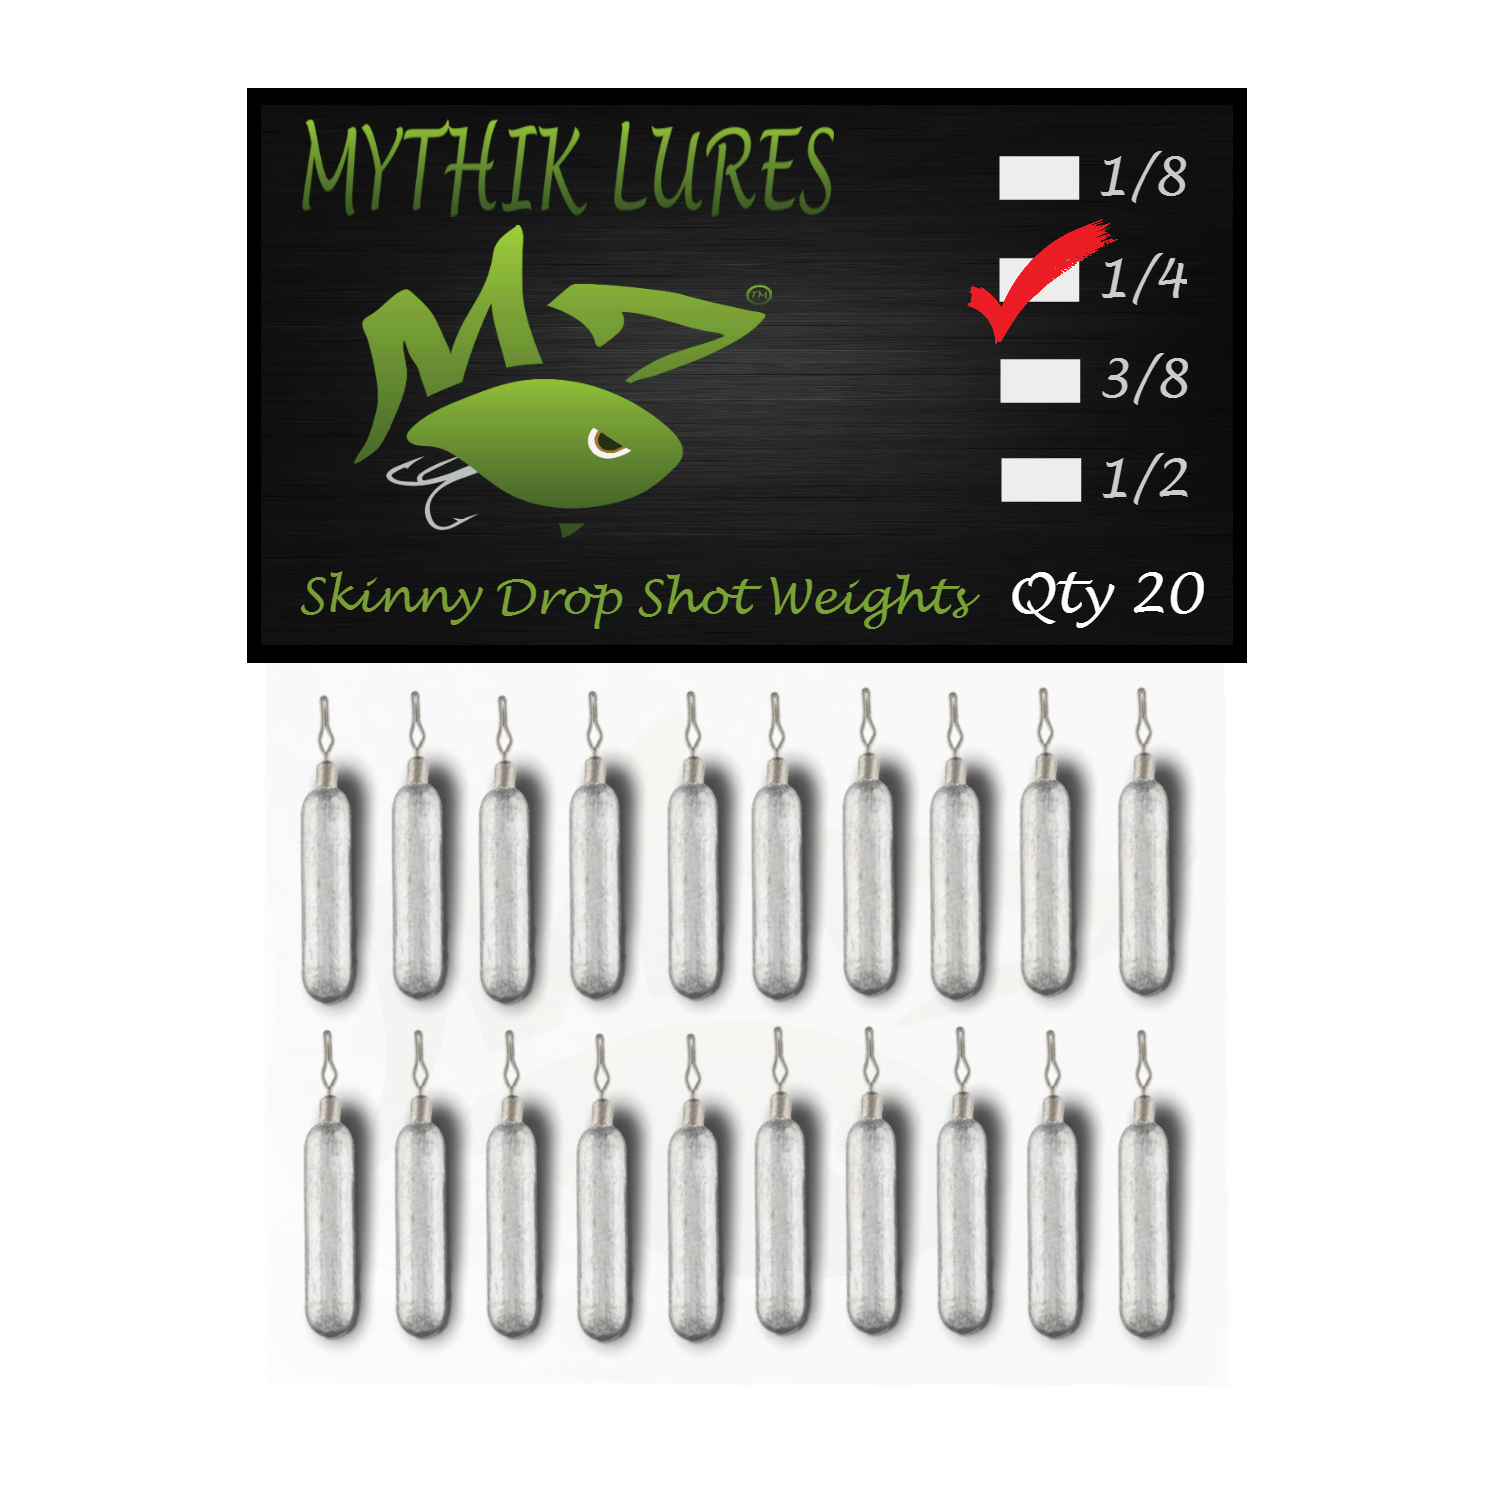 Mythik Lures Skinny Lead Drop Shot Weights 1/4 oz